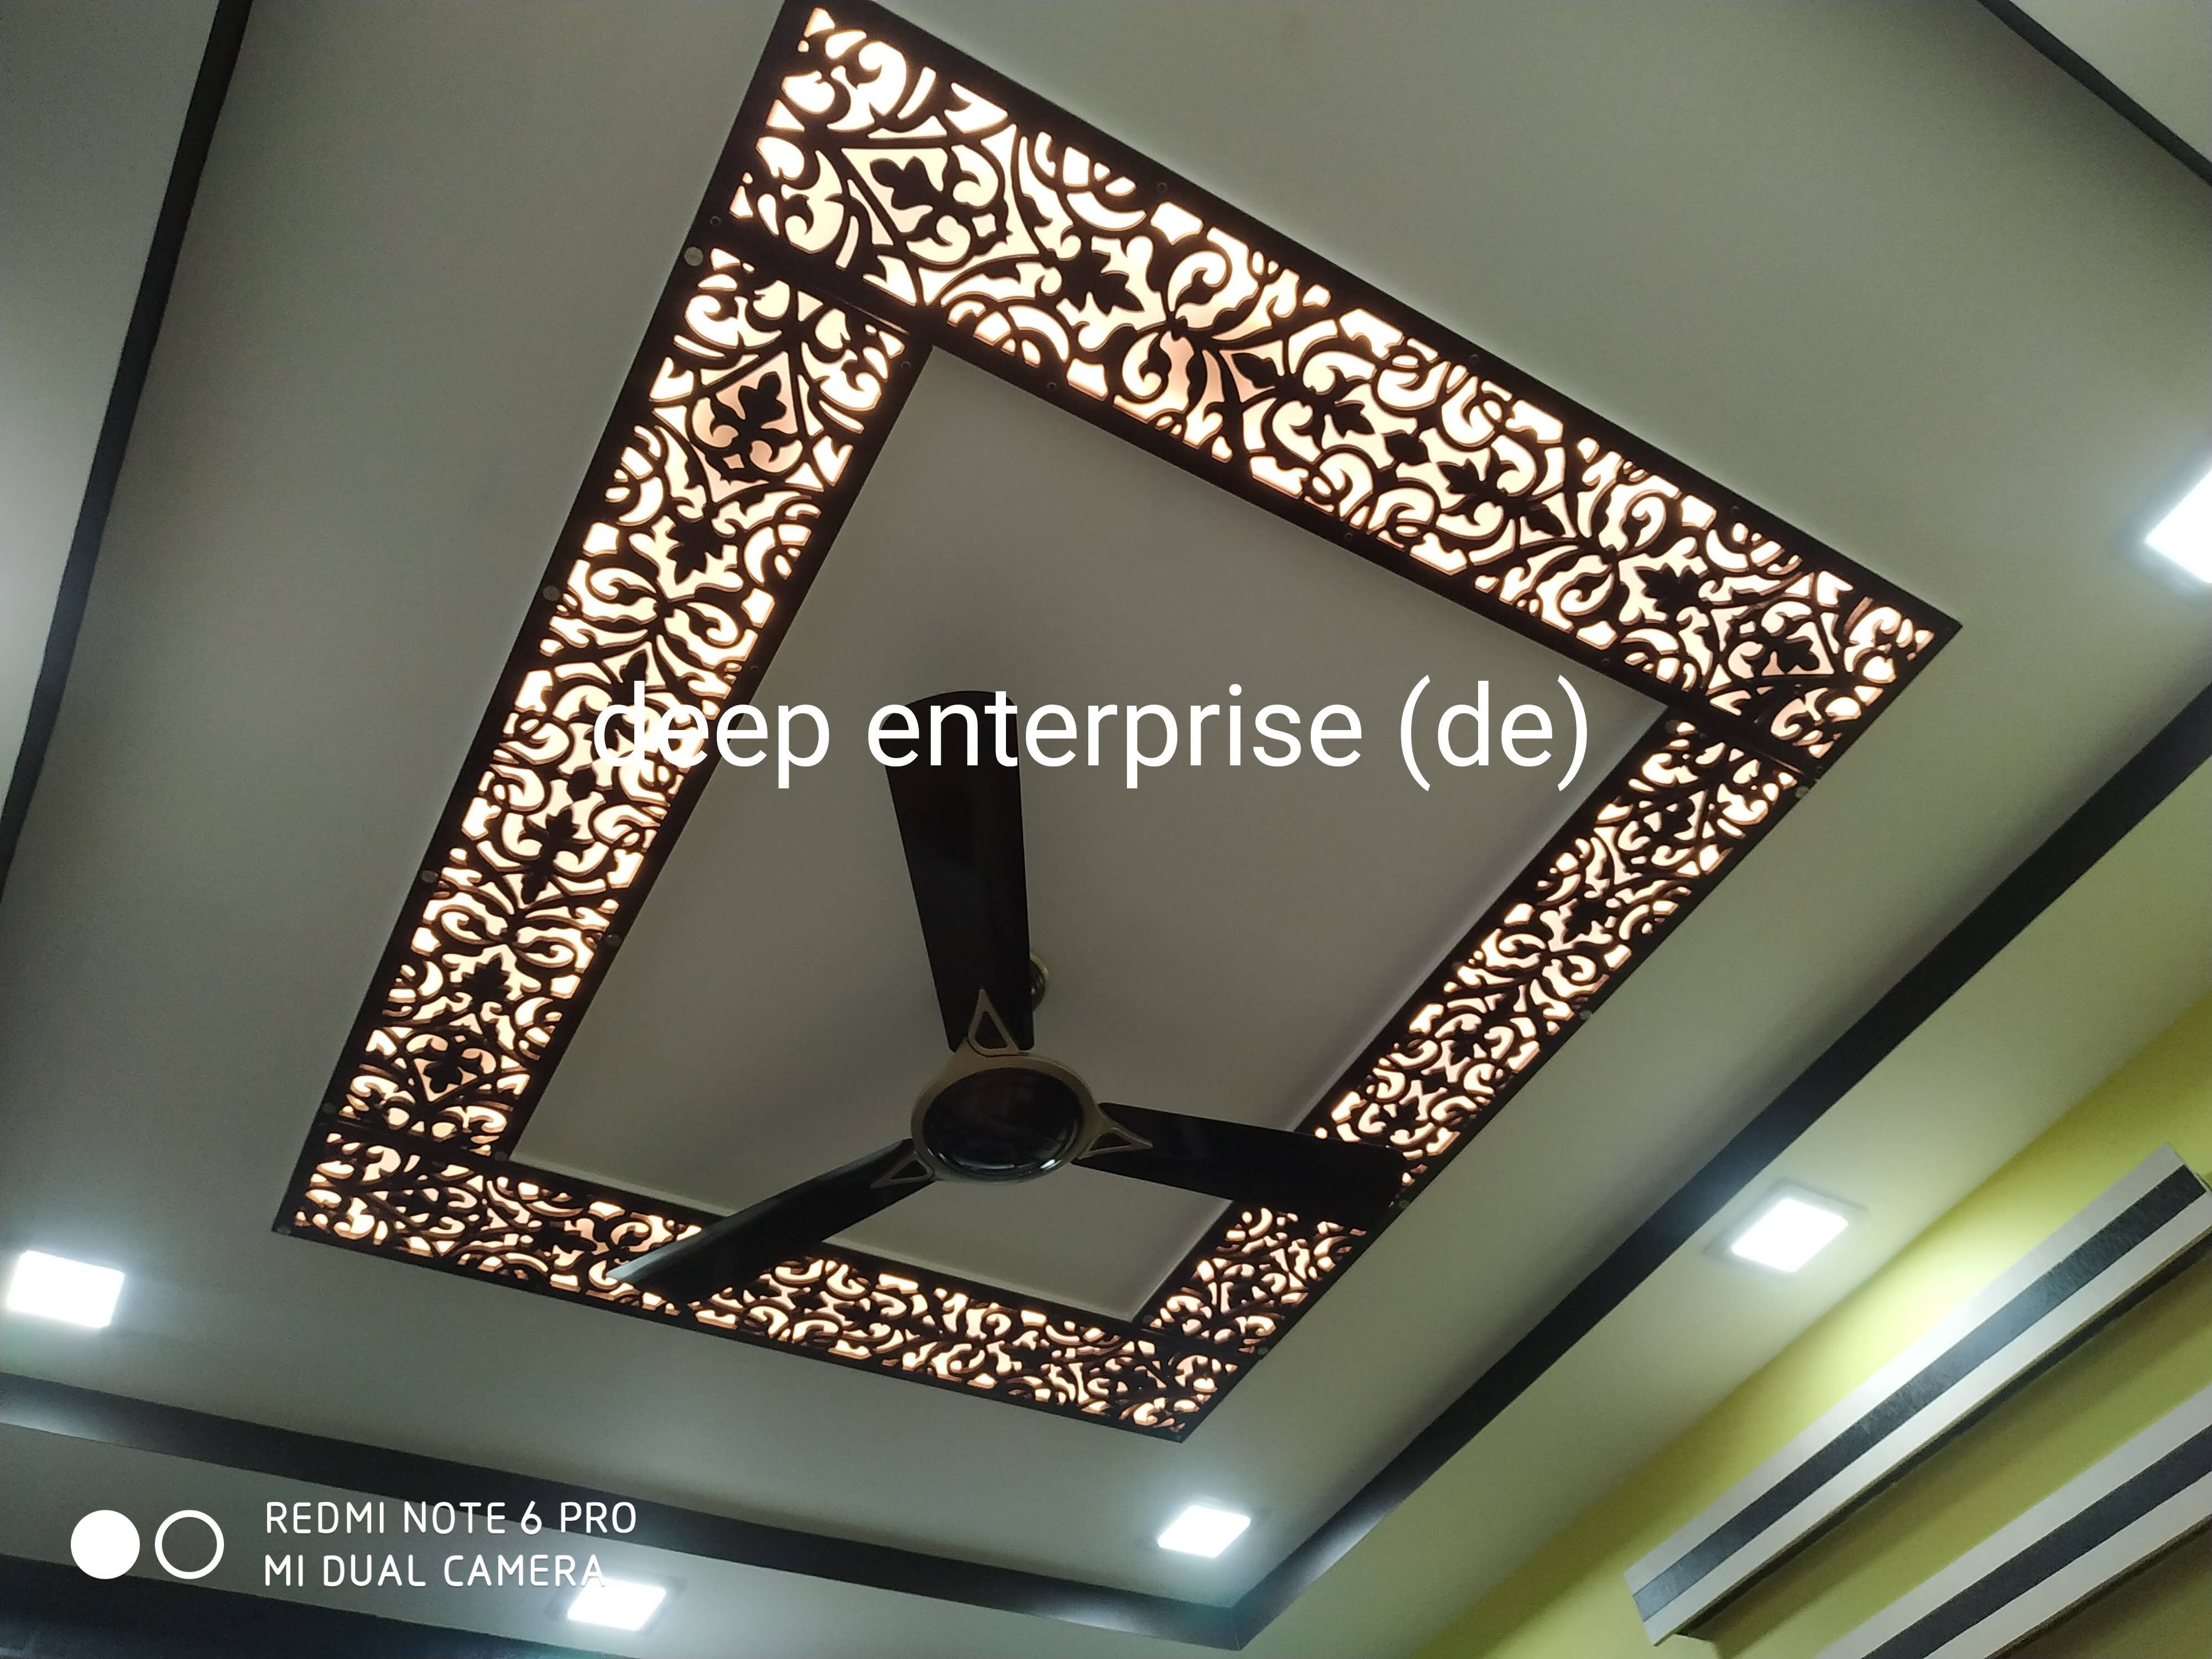 mdf jali mix gypsum bod ceiling design , drywall gypsum bod false ceiling , false ceiling , roof ceiling design , gypsum bod false ceiling design , heat prove false ceiling design,